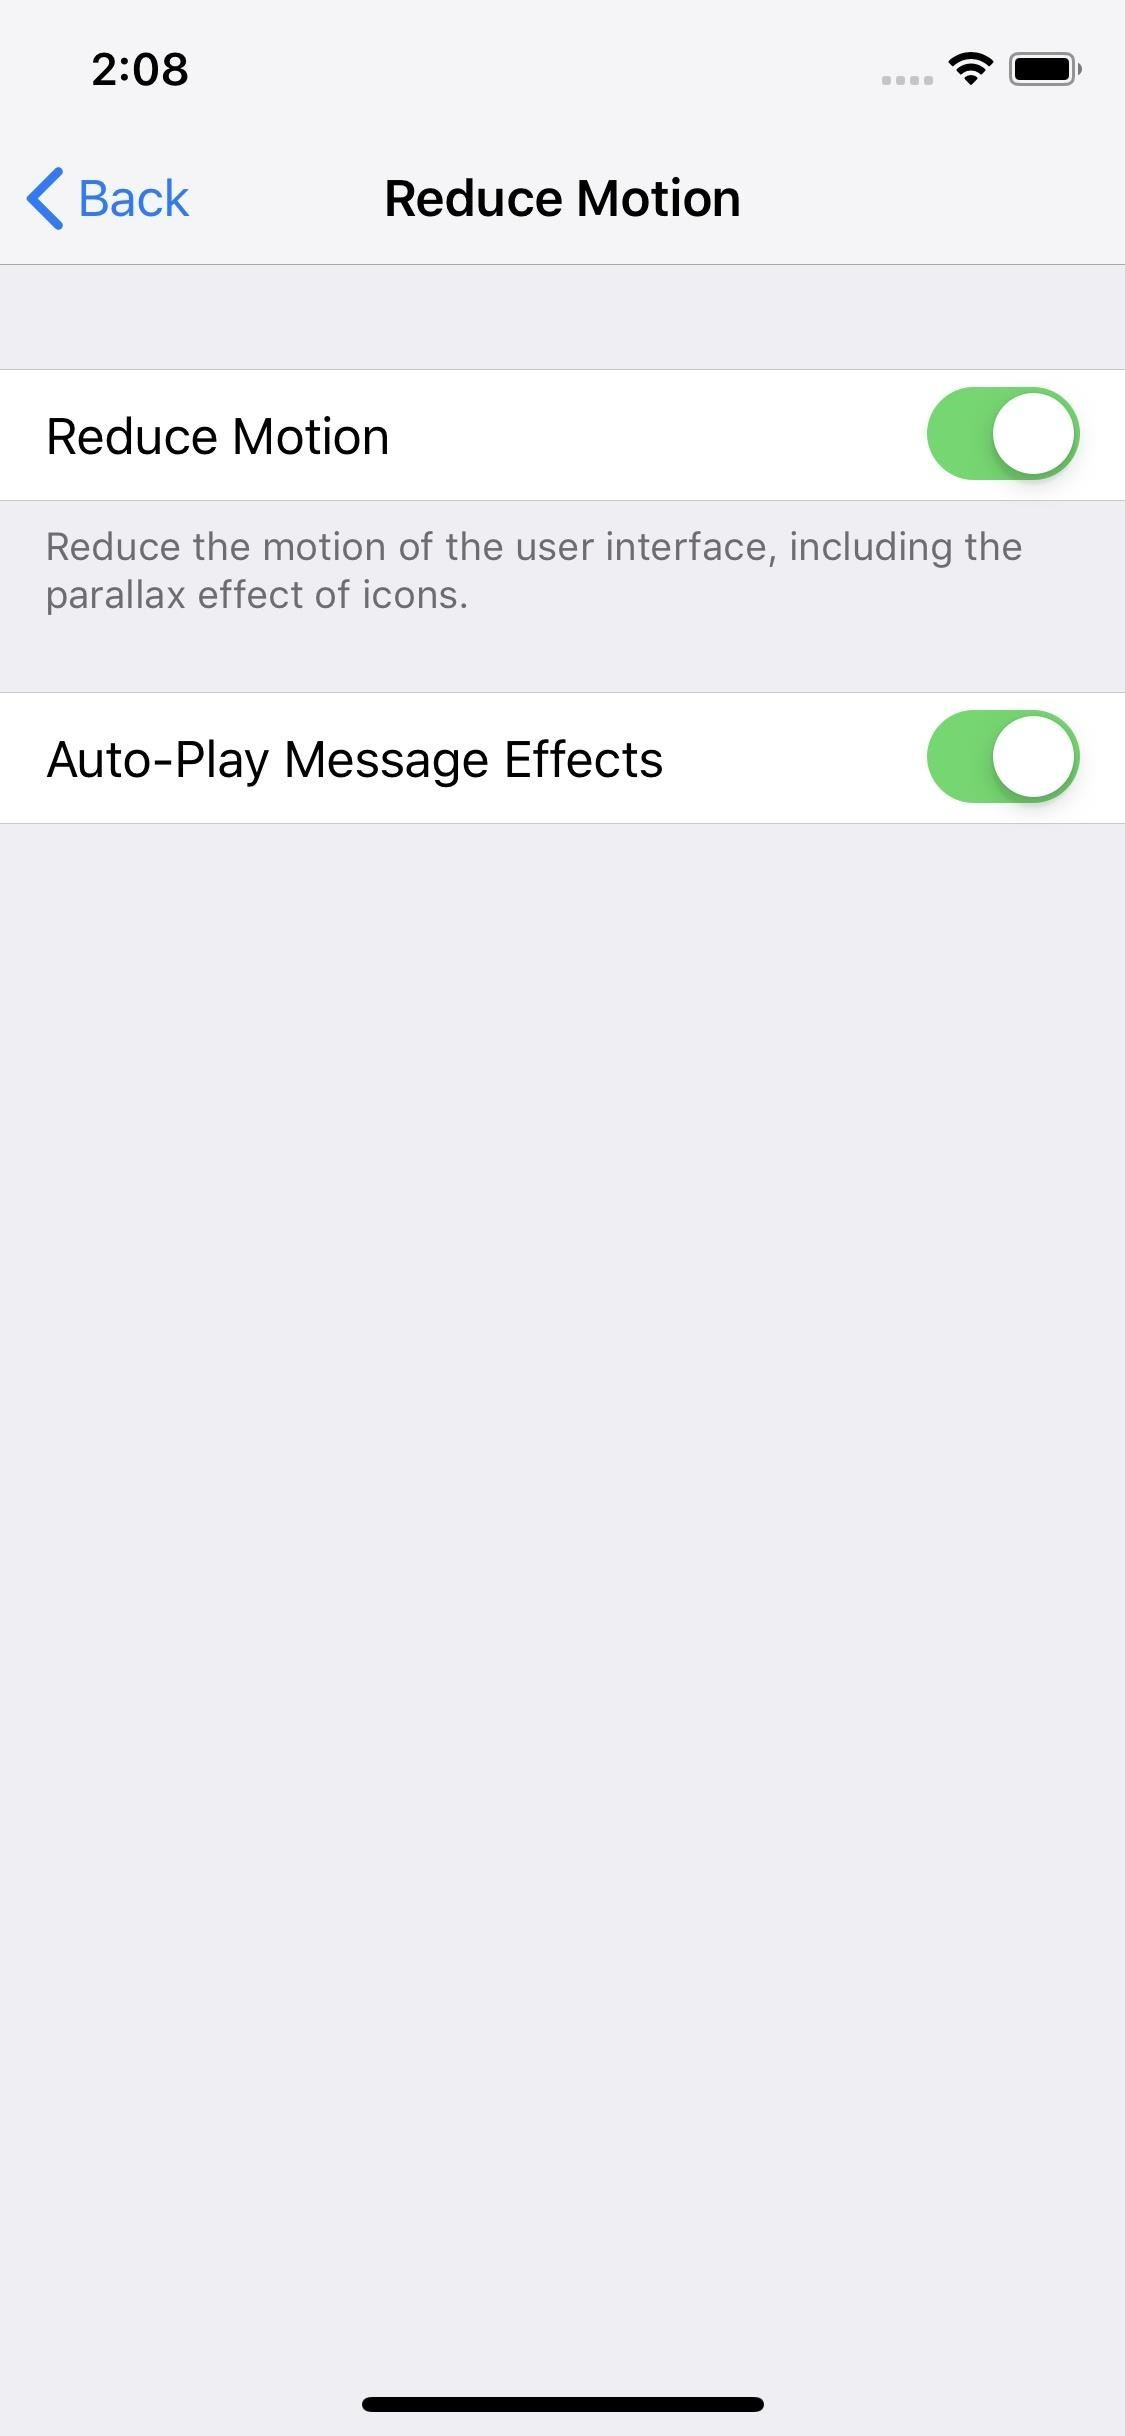 How to Disable the Parallax Effect in iOS to Reduce Motion on Your iPhone